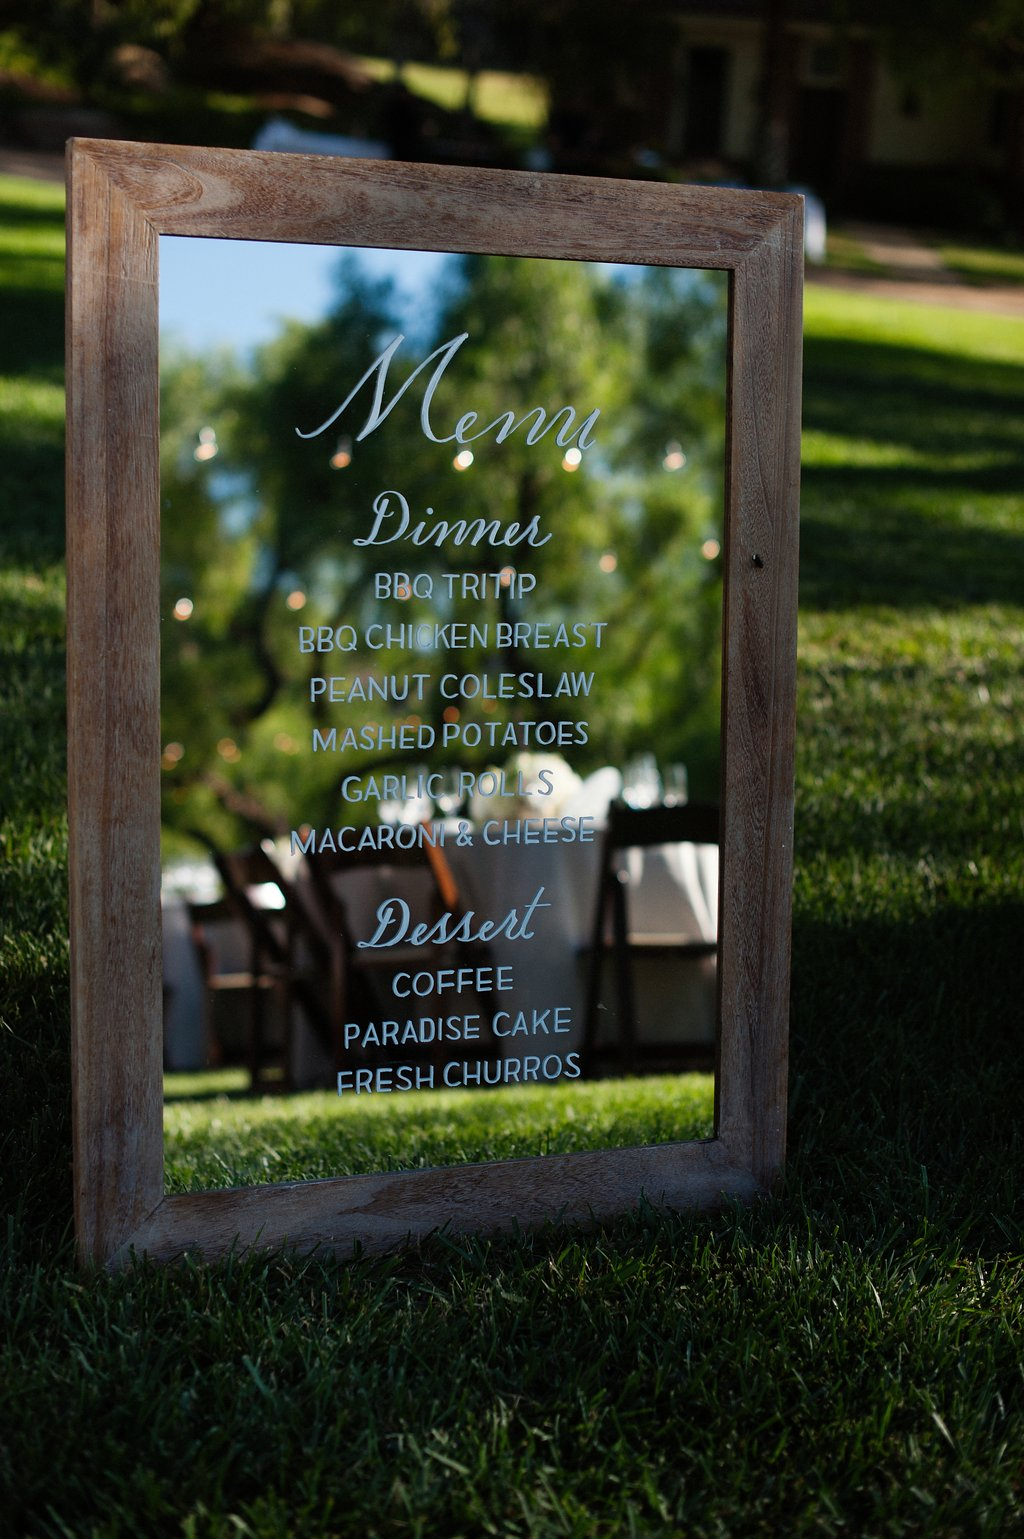 Wedding Mirror Menu.jpg